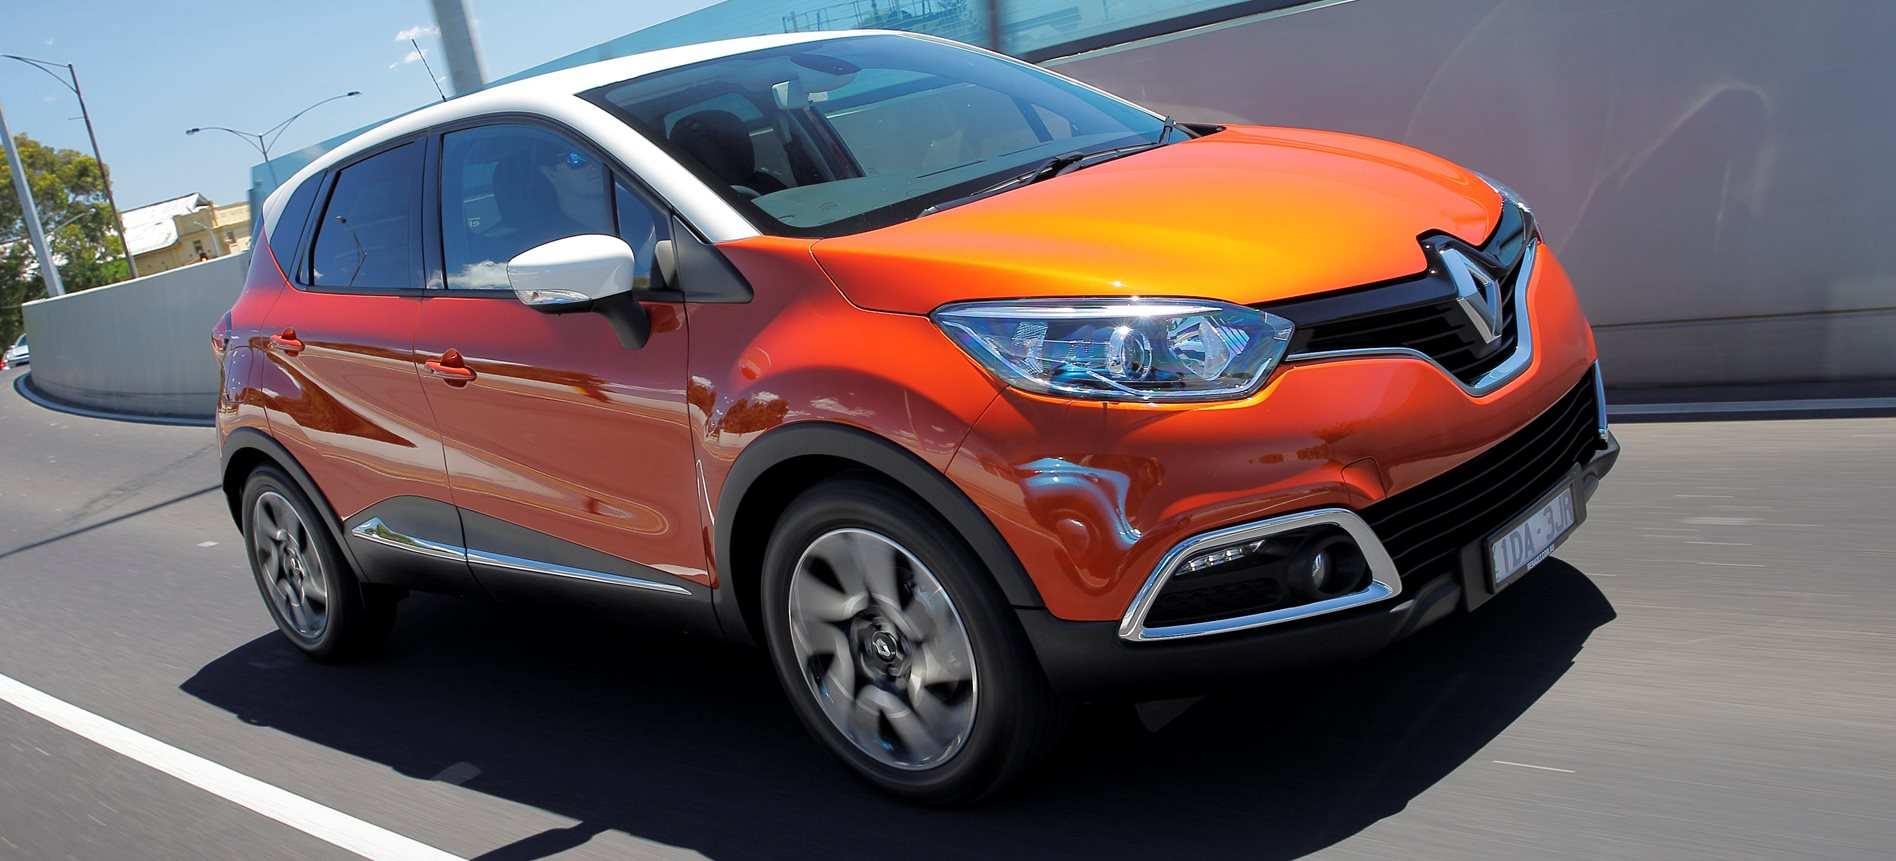 2015 renault captur review wheels. Black Bedroom Furniture Sets. Home Design Ideas